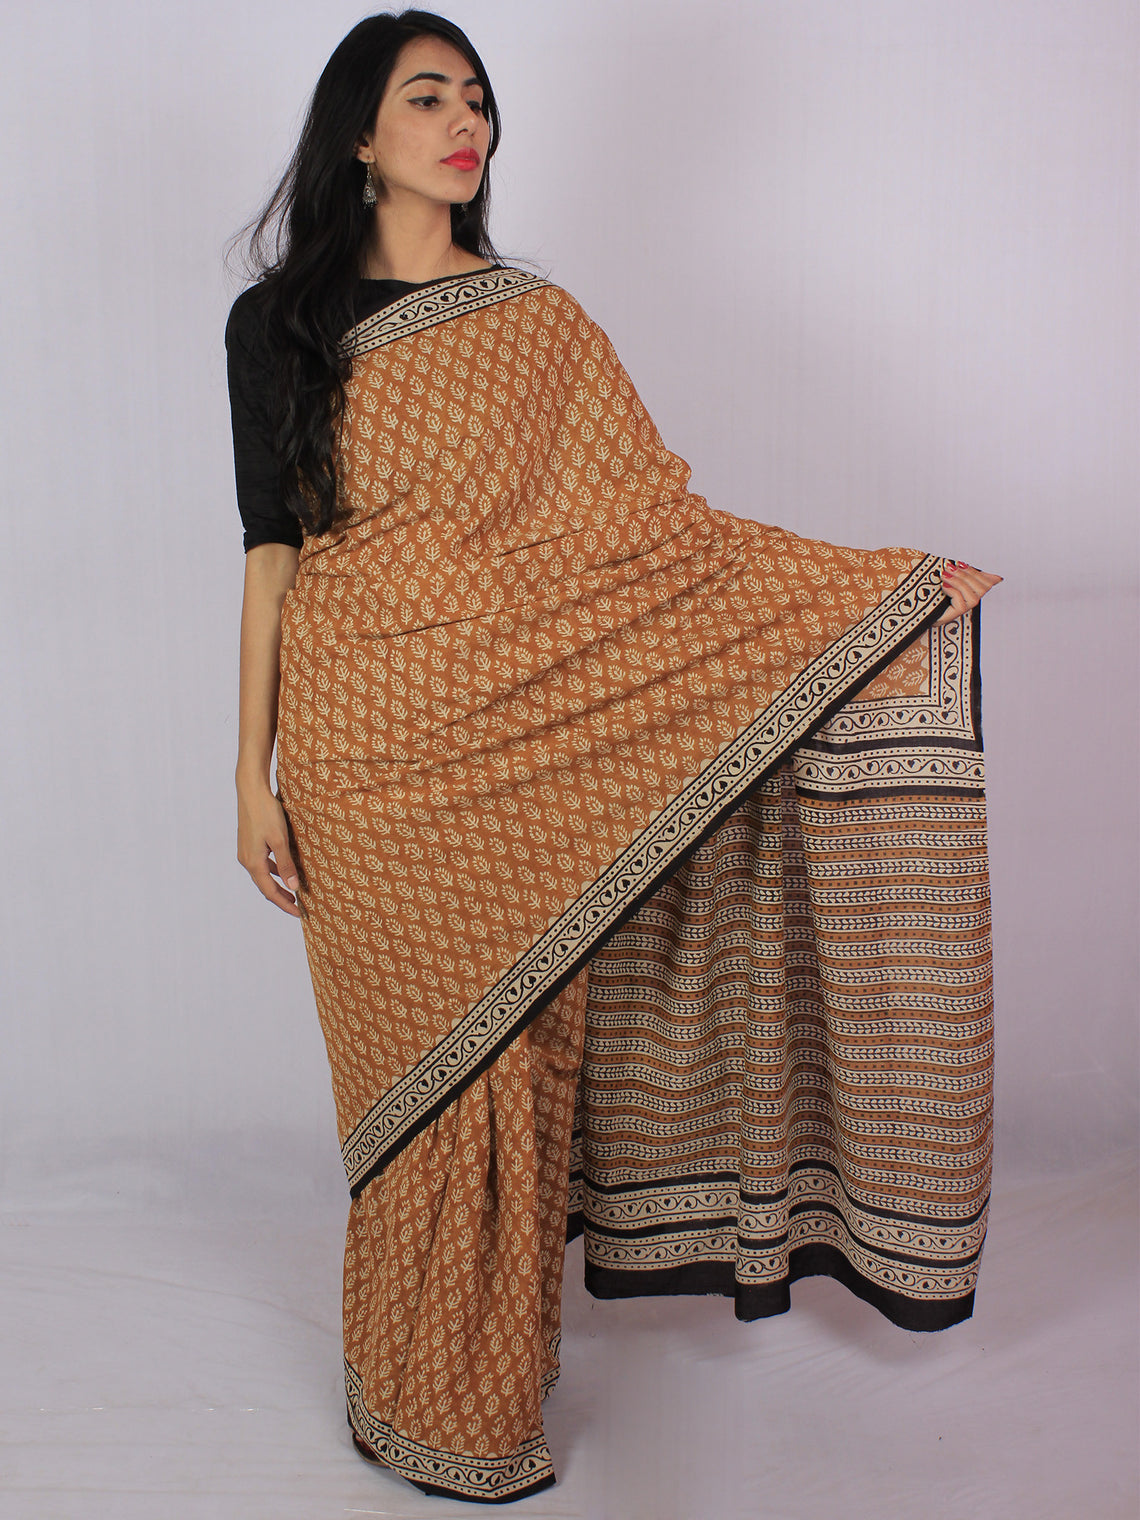 Mustard Yellow Ivory Cotton Hand Block Printed Saree in Natural Colors - S031701173